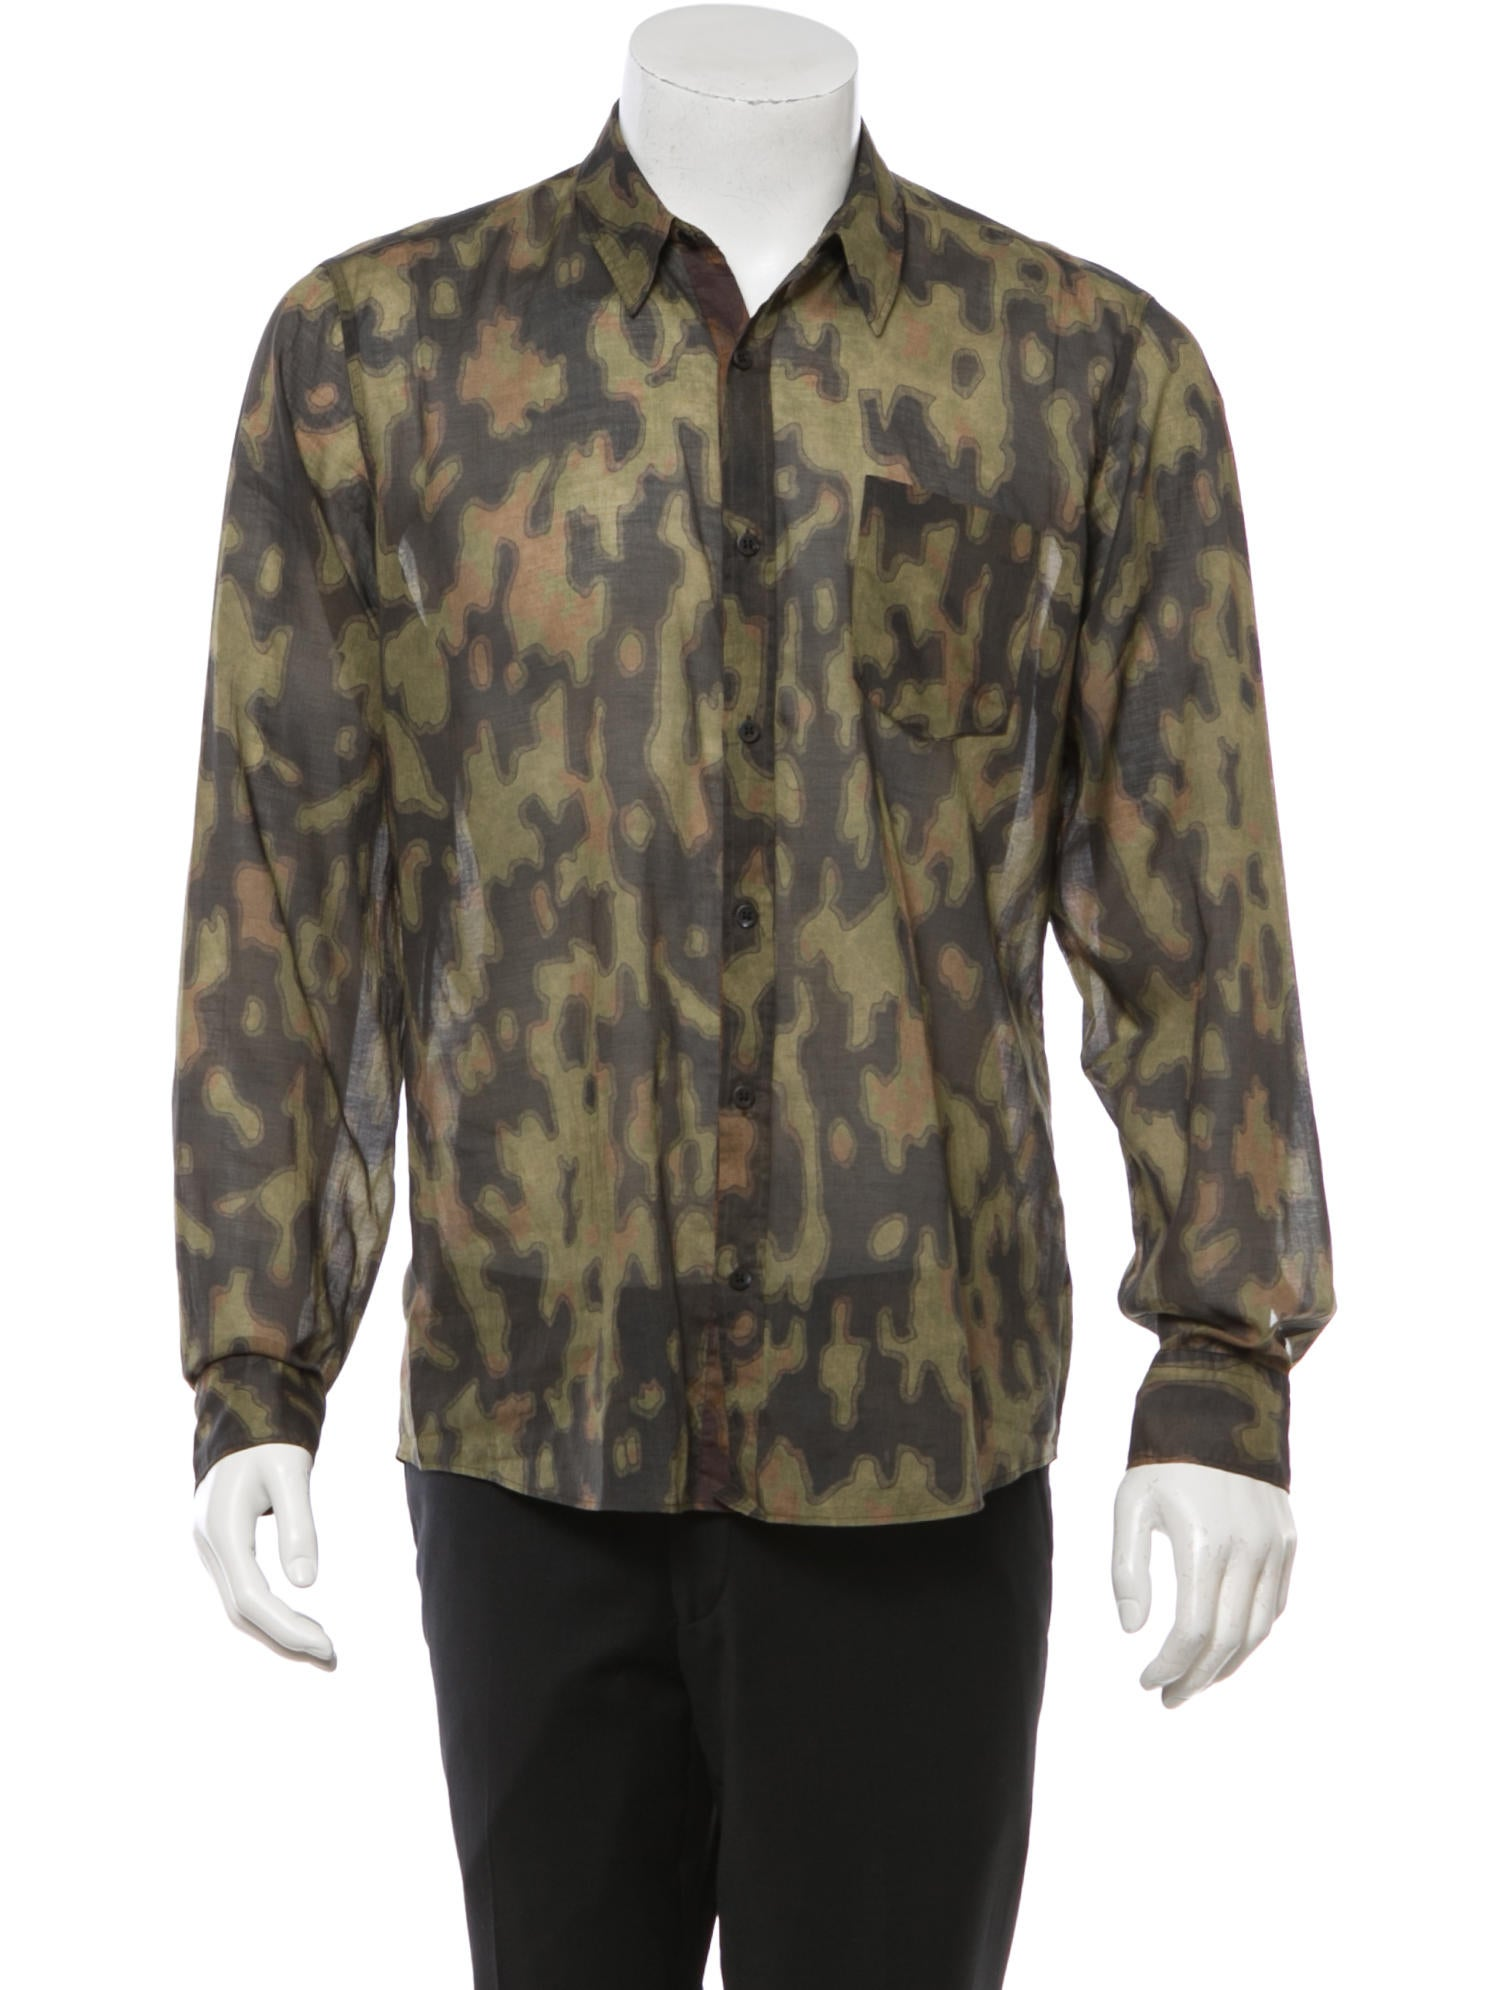 Dries Van Noten Camouflage Button Up Shirt Clothing